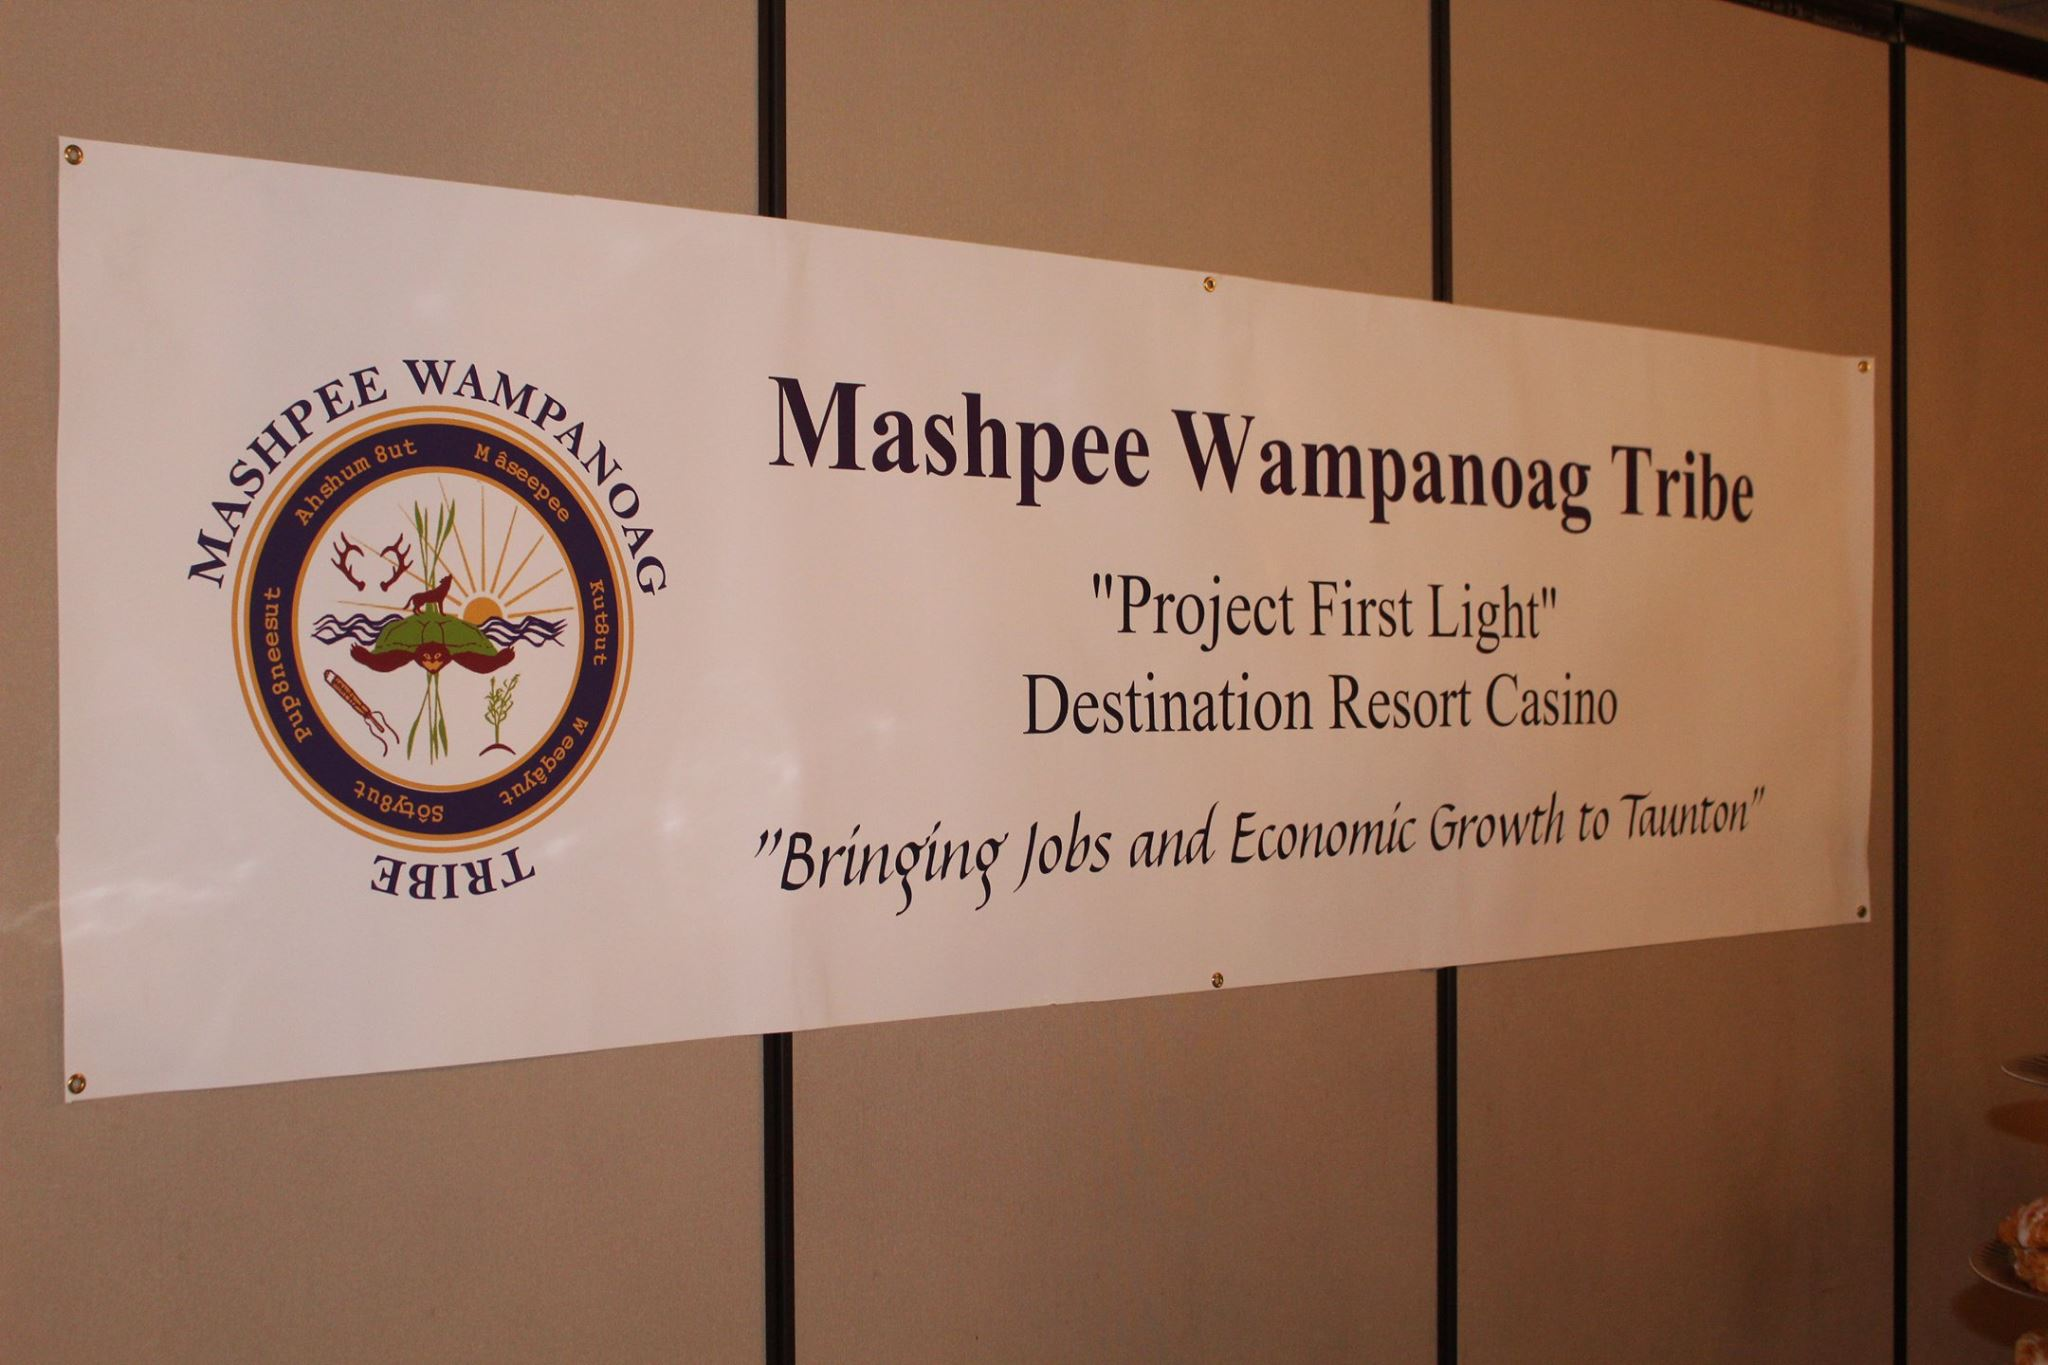 Opinion: Don't break promise to Mashpee Wampanoag Tribe